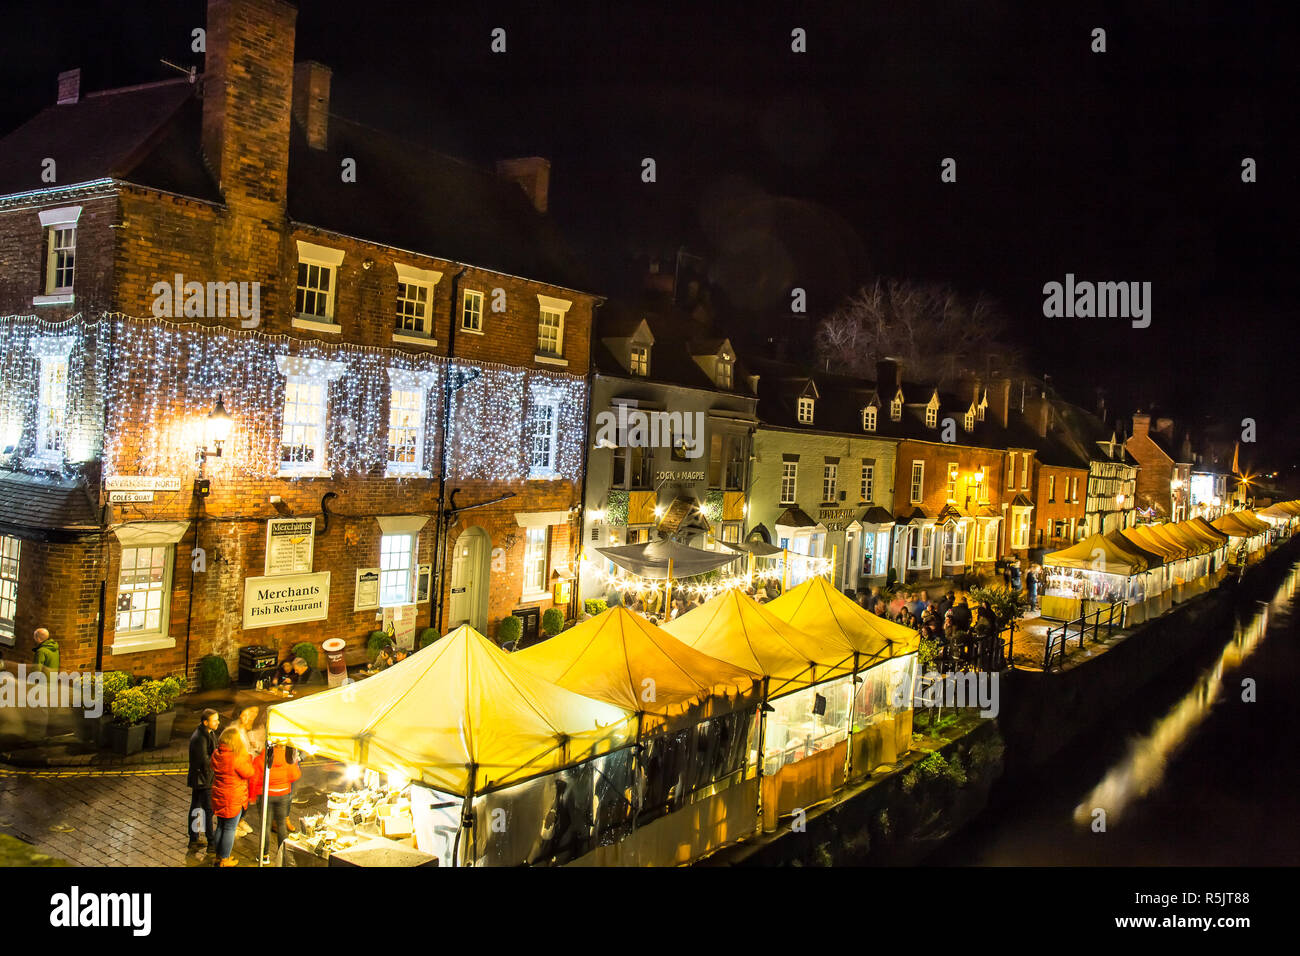 Bewdley, UK. 1st December, 2018. There is a feeling of real community spirit and festive fun this evening as the folk of Bewdley come together to support the town's annual Christmas lights switch-on and traditional Victorian Christmas Market. Hosted by local radio station BBC Hereford and Worcester presenter, Andrew Easton, with live band entertainment from the amazing Gasoline & Matches, the crowds ensure this is an evening which truly celebrates advent and the revelry of the festive season. Credit: Lee Hudson/Alamy Live News Stock Photo